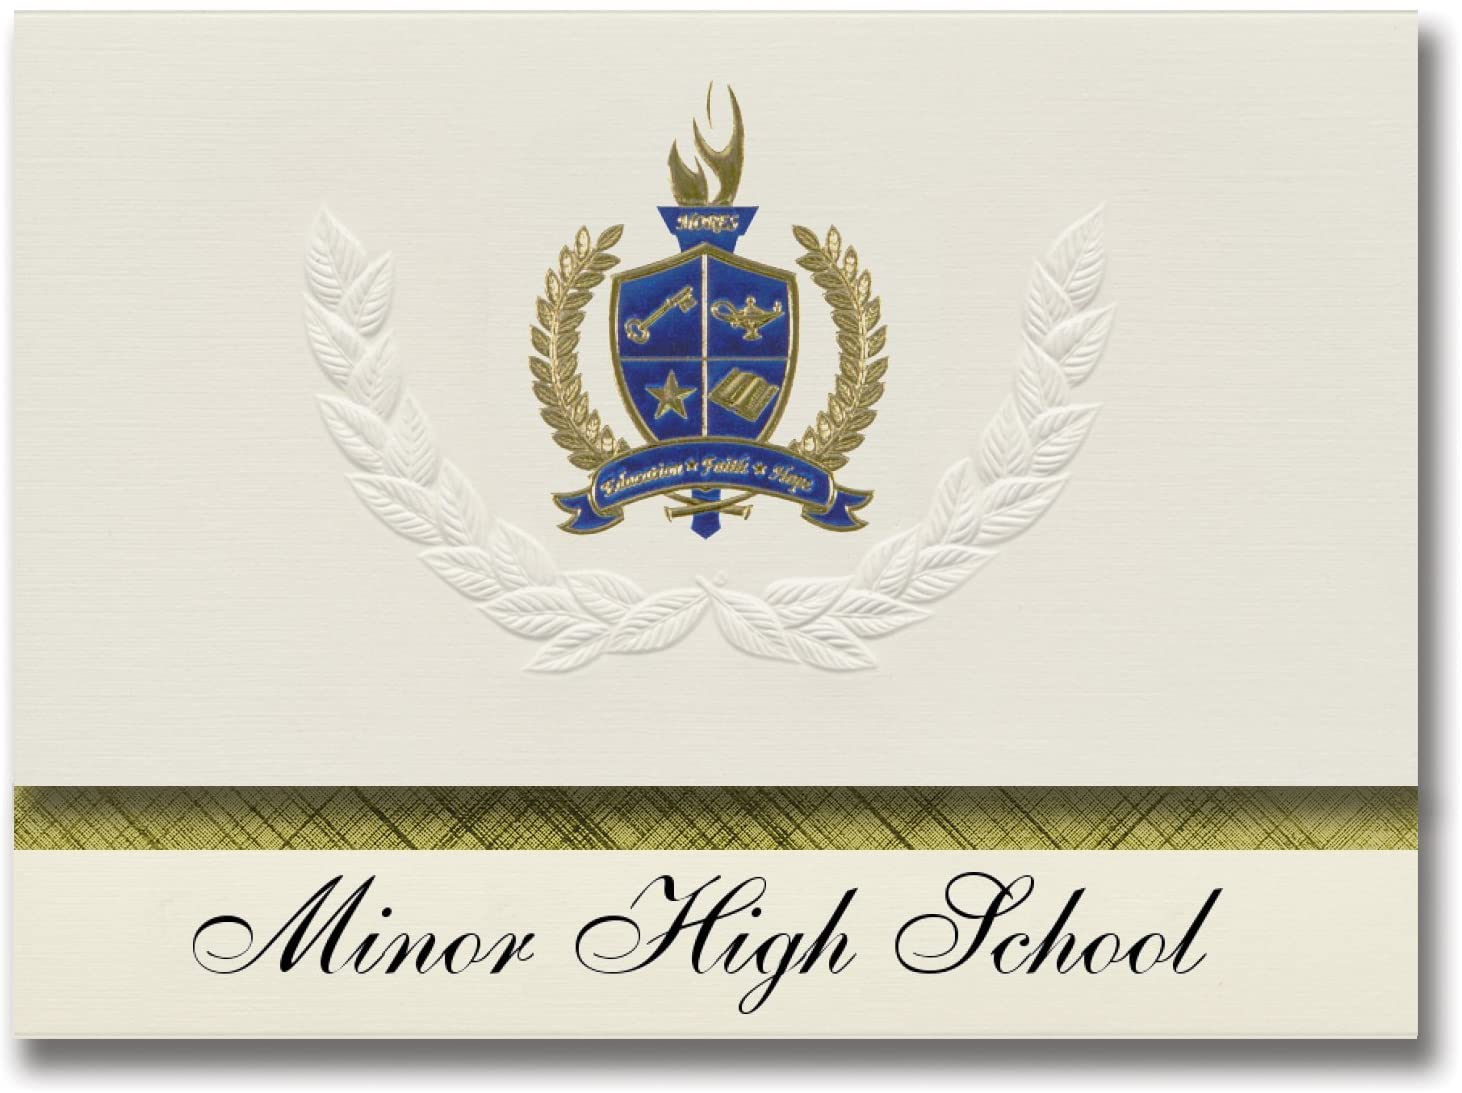 Signature Announcements Minor High School (Adamsville, AL) Graduation Announcements, Presidential style, Basic package of 25 with Gold & Blue Metallic Foil seal